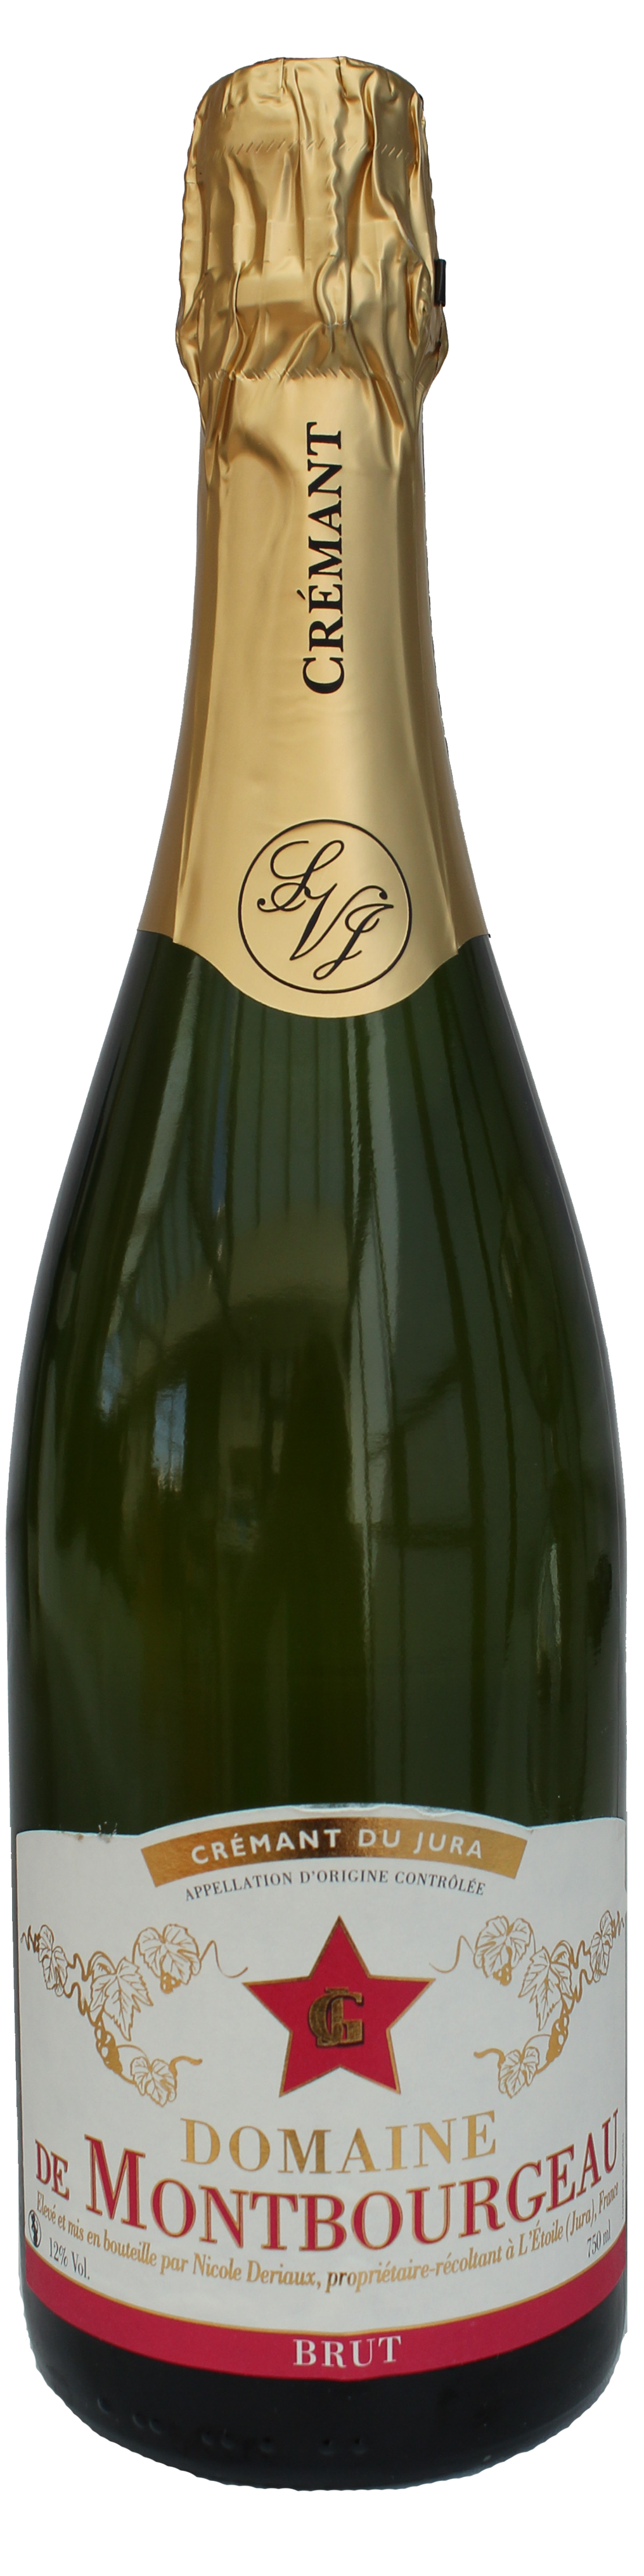 Image of product Cremant du Jura